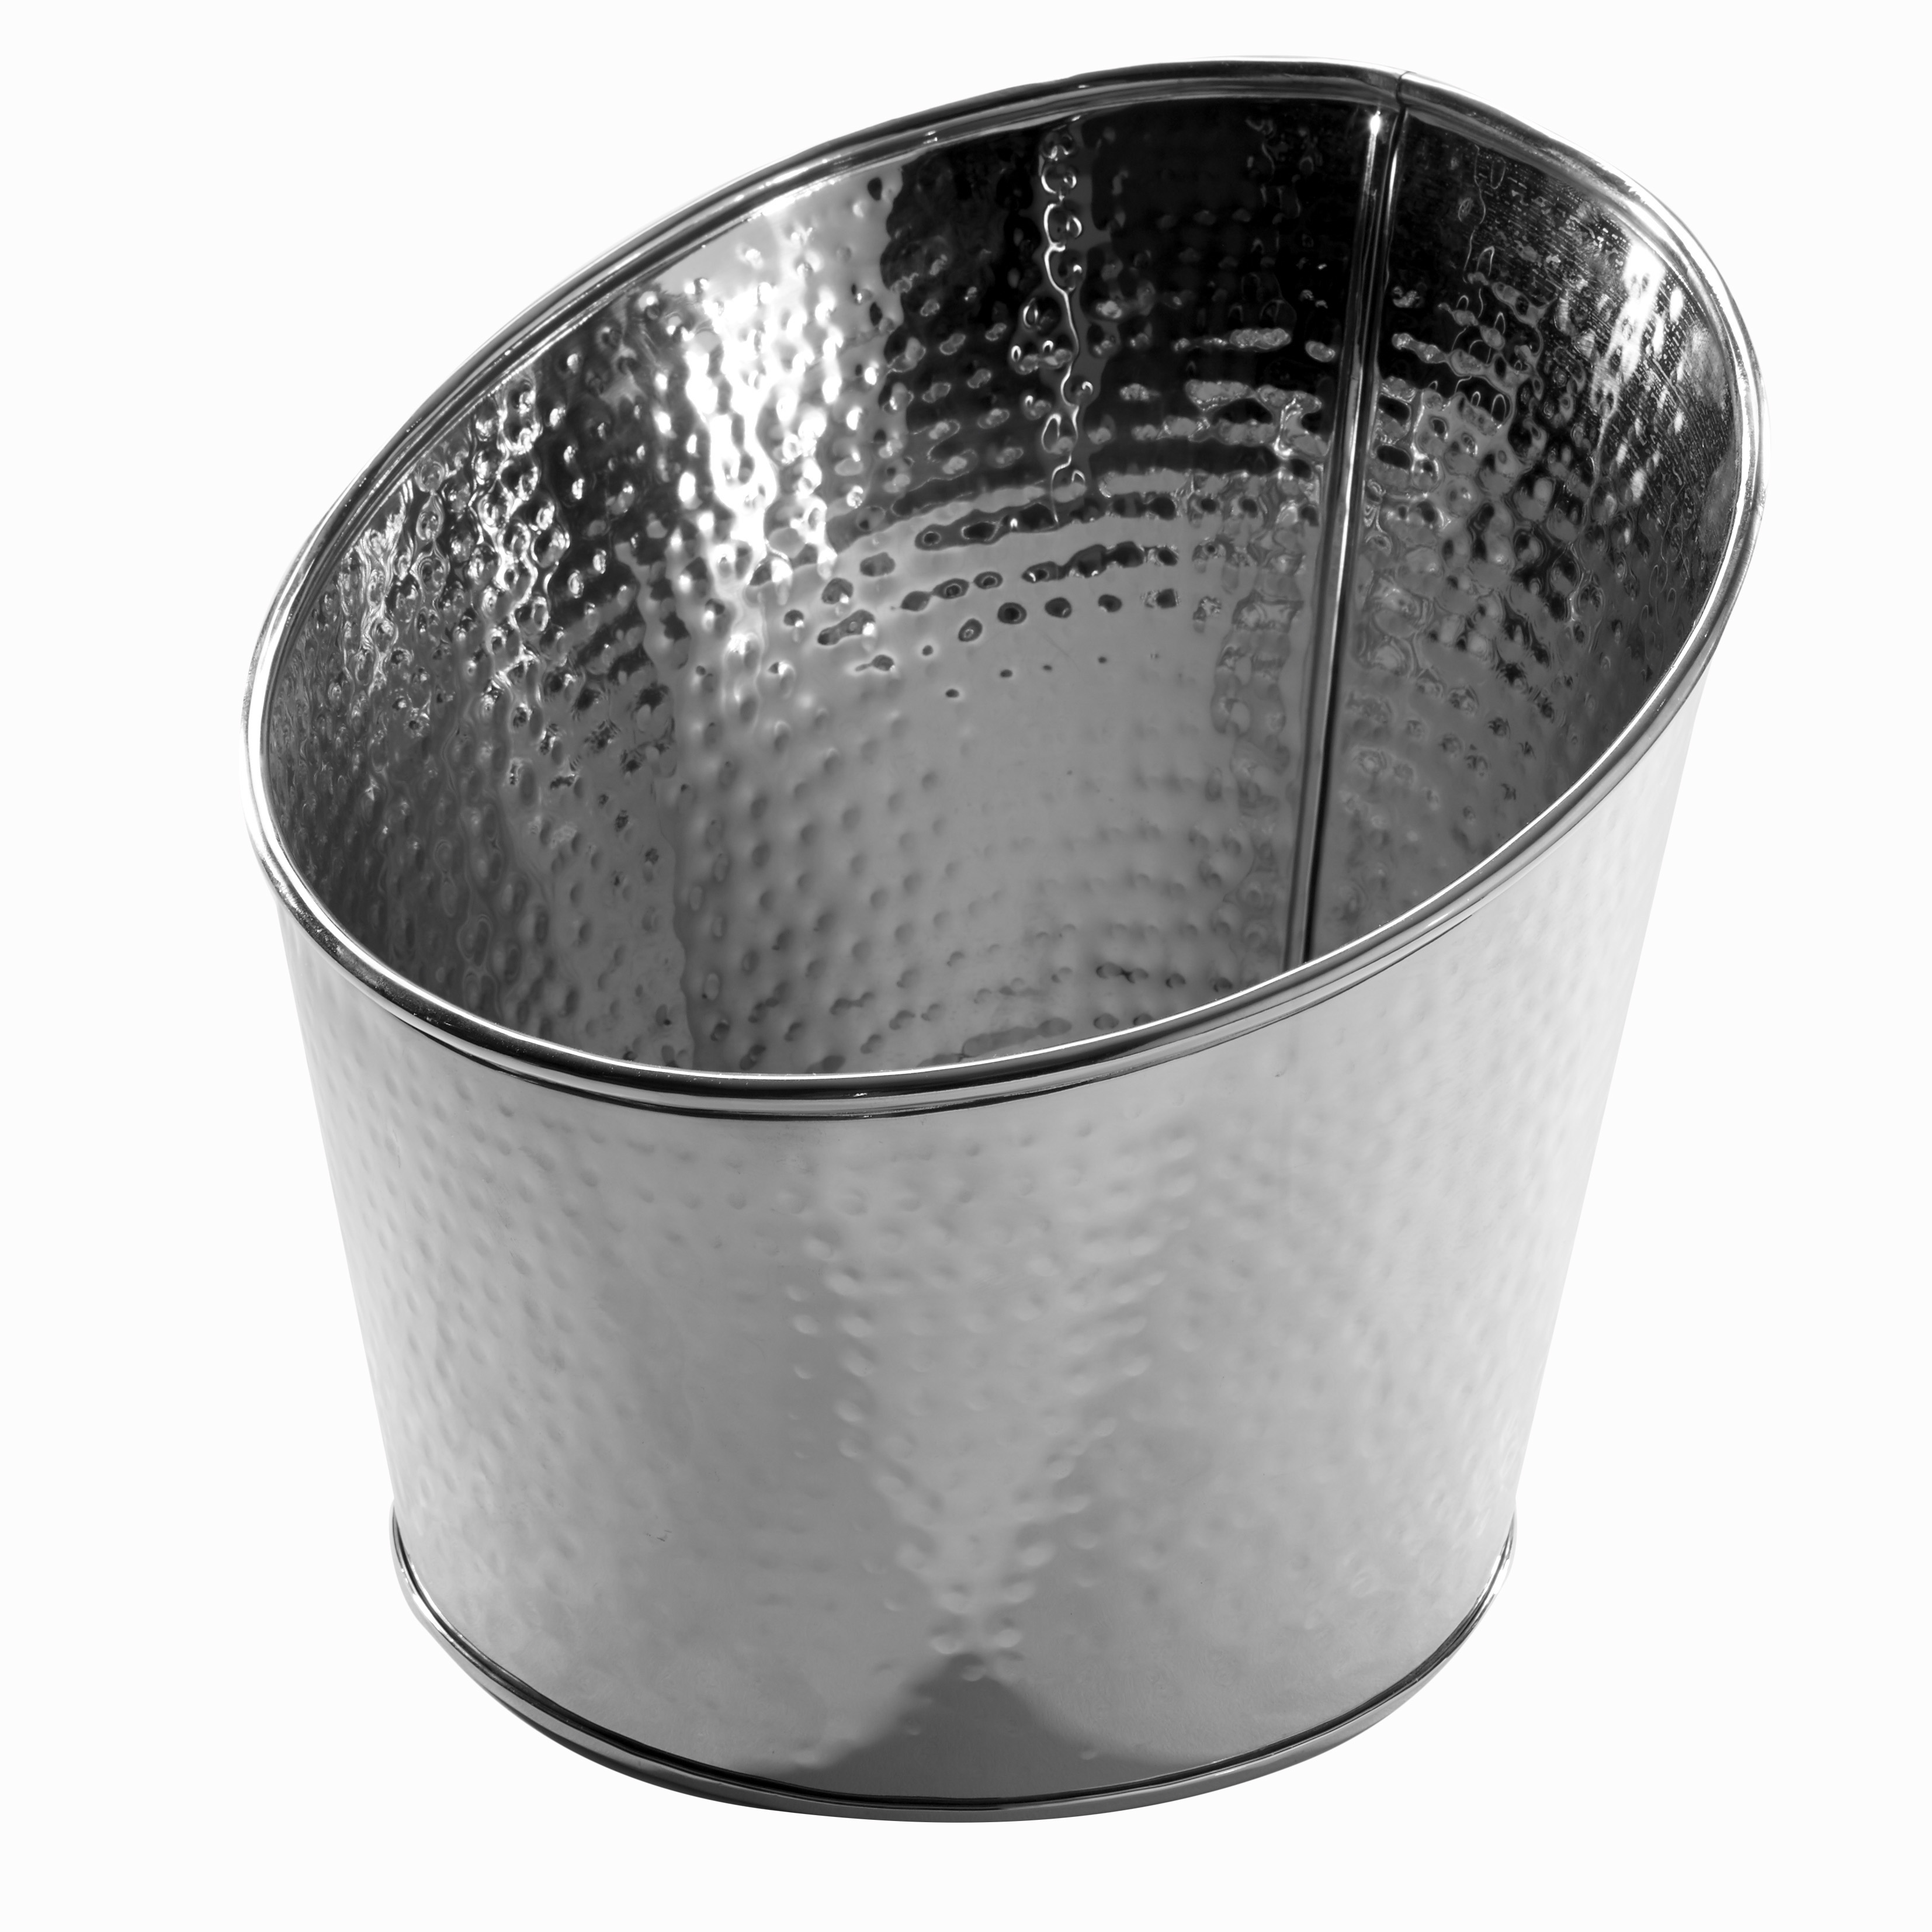 American Metalcraft HMSR8 beverage / ice tub